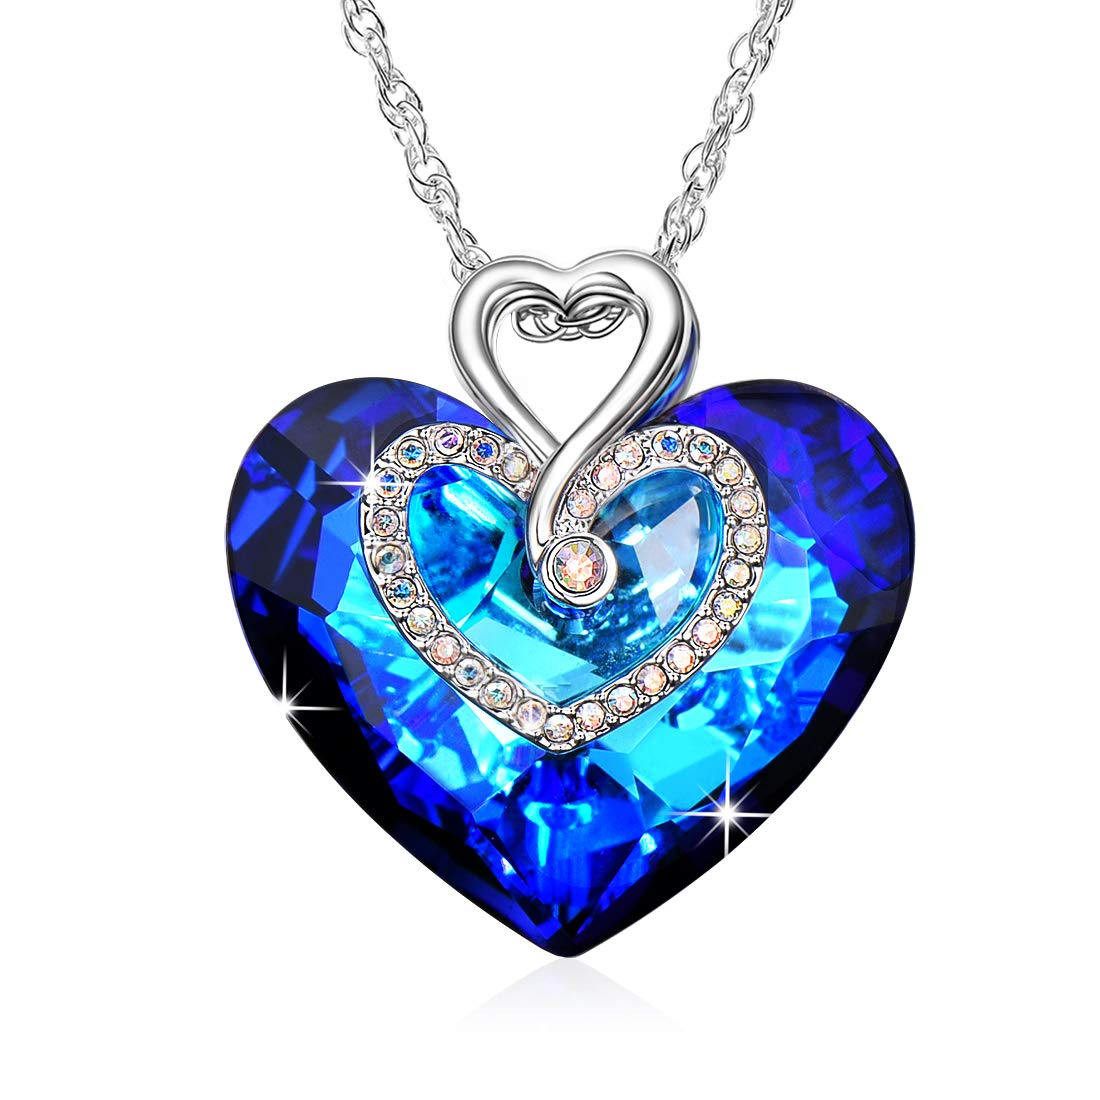 Fashion Jewelry Fabulous Heart Shaped Pendant Necklace With Clear Sparkly Stones. Necklaces & Pendants